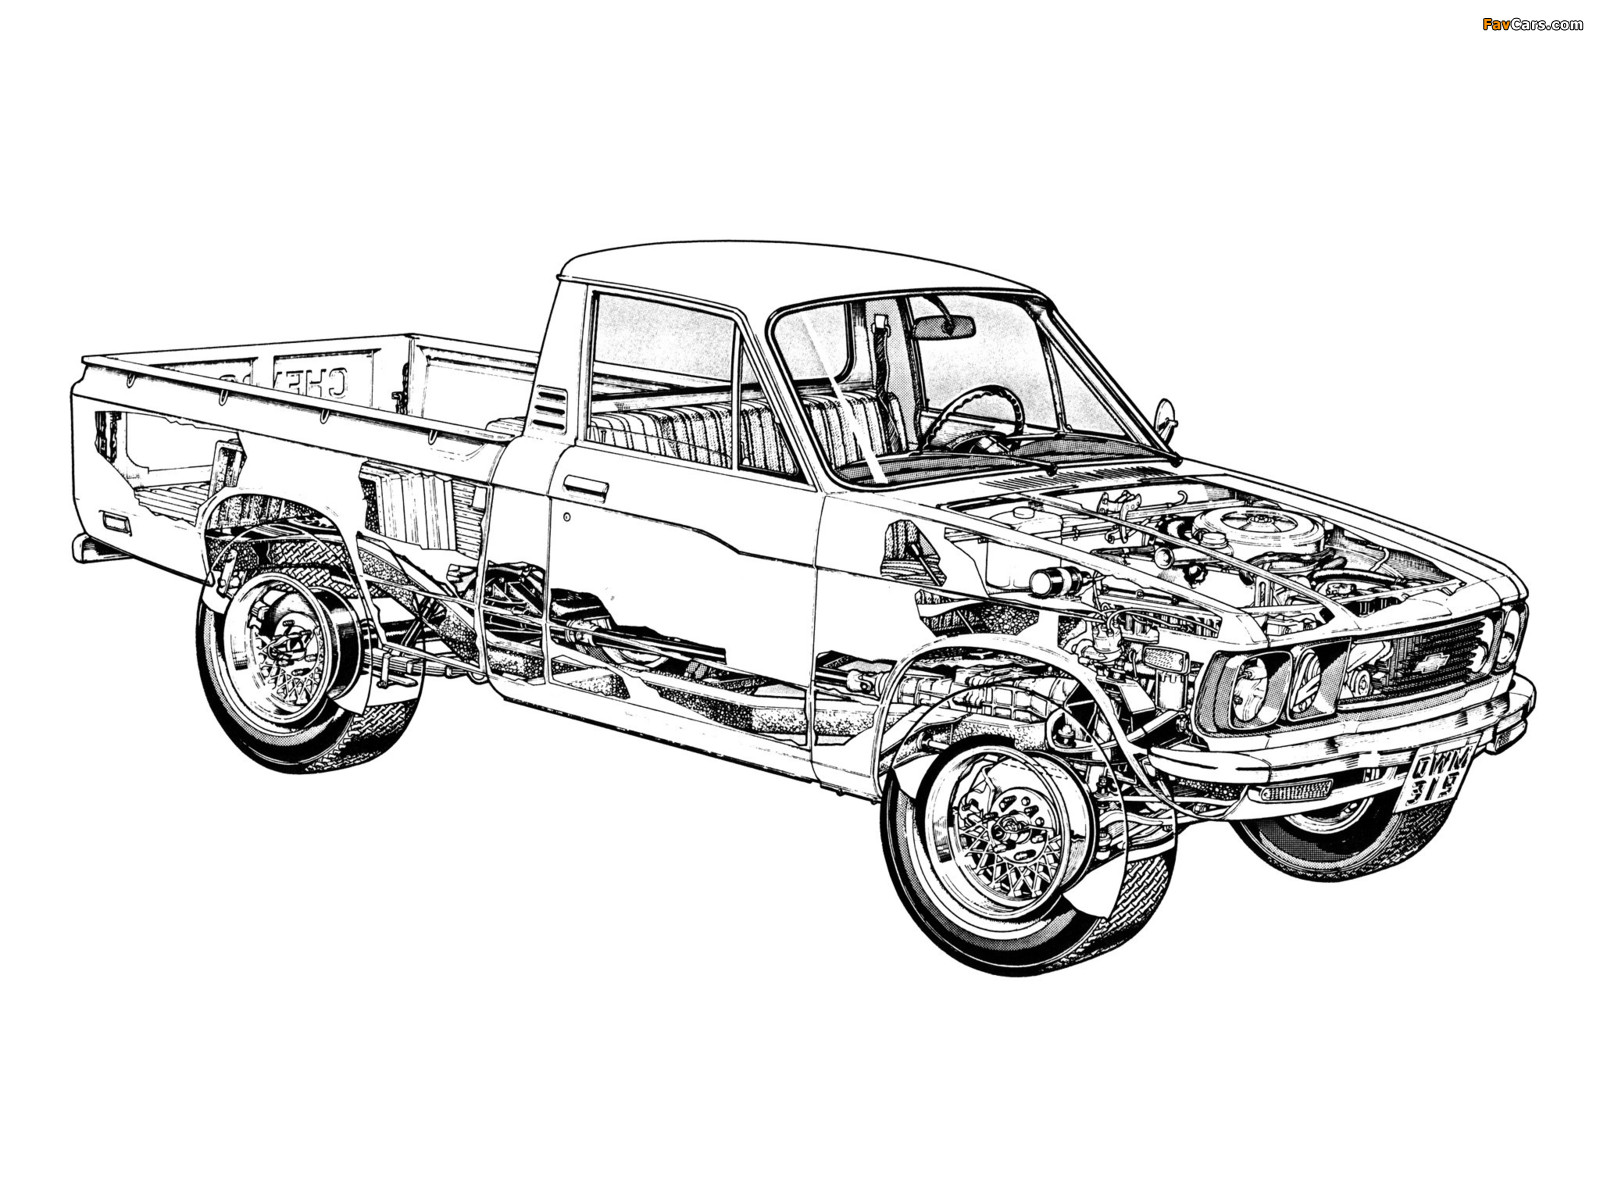 Images of Chevrolet 150 (1600 x 1200)